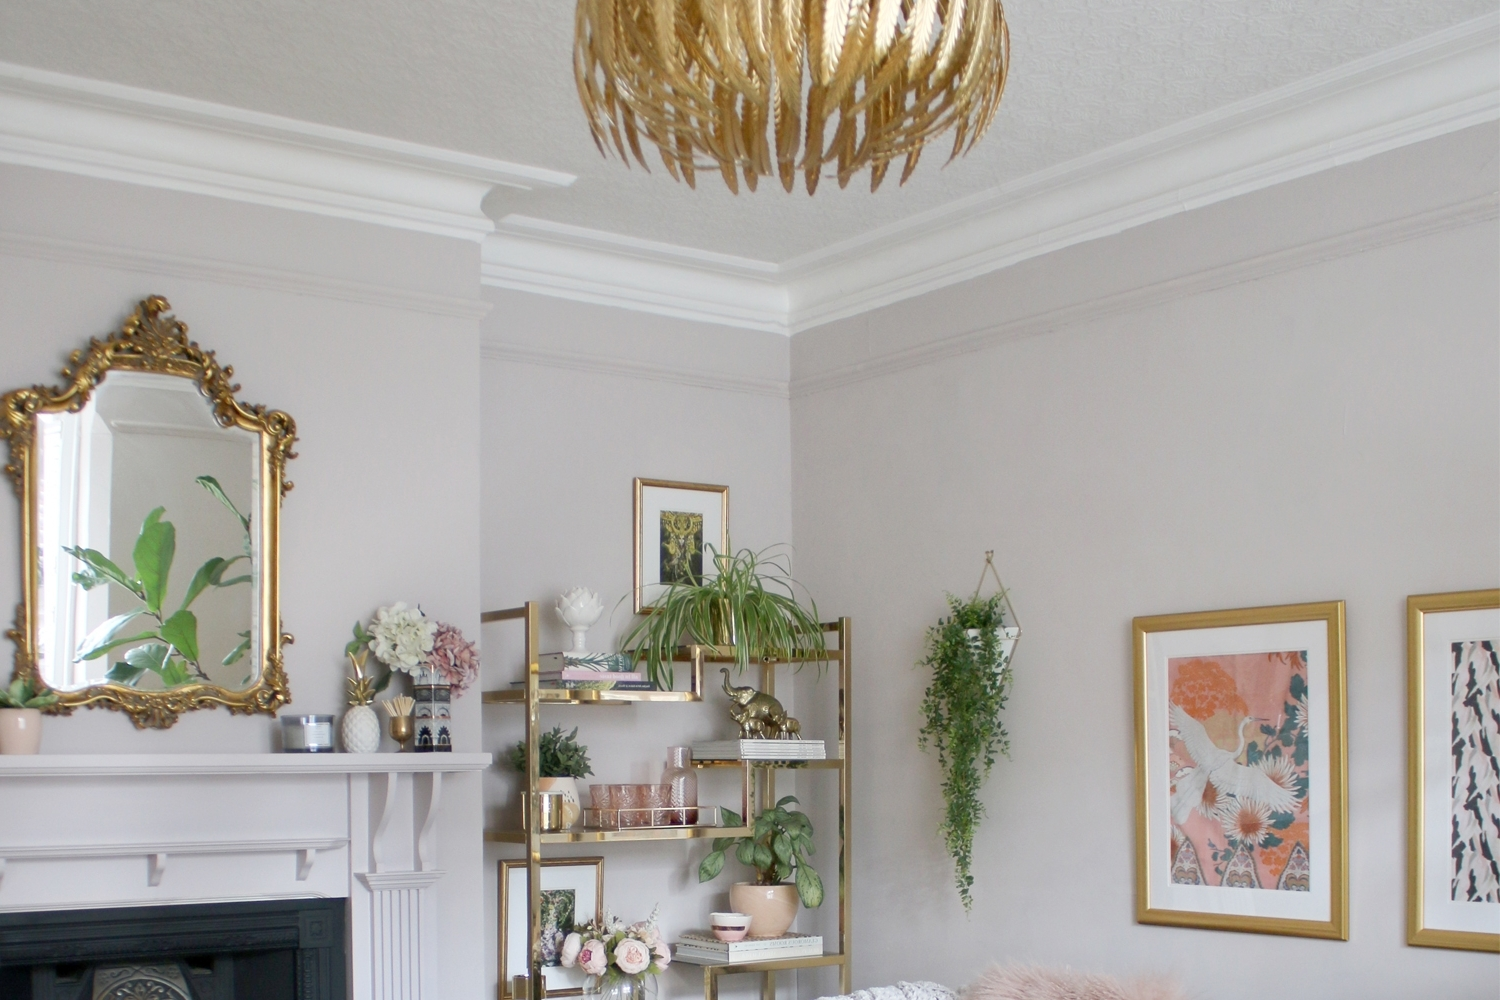 Should You Paint Above The Picture Rail? Swoon Worthy 20+ Dado Rail Living Room Ideas